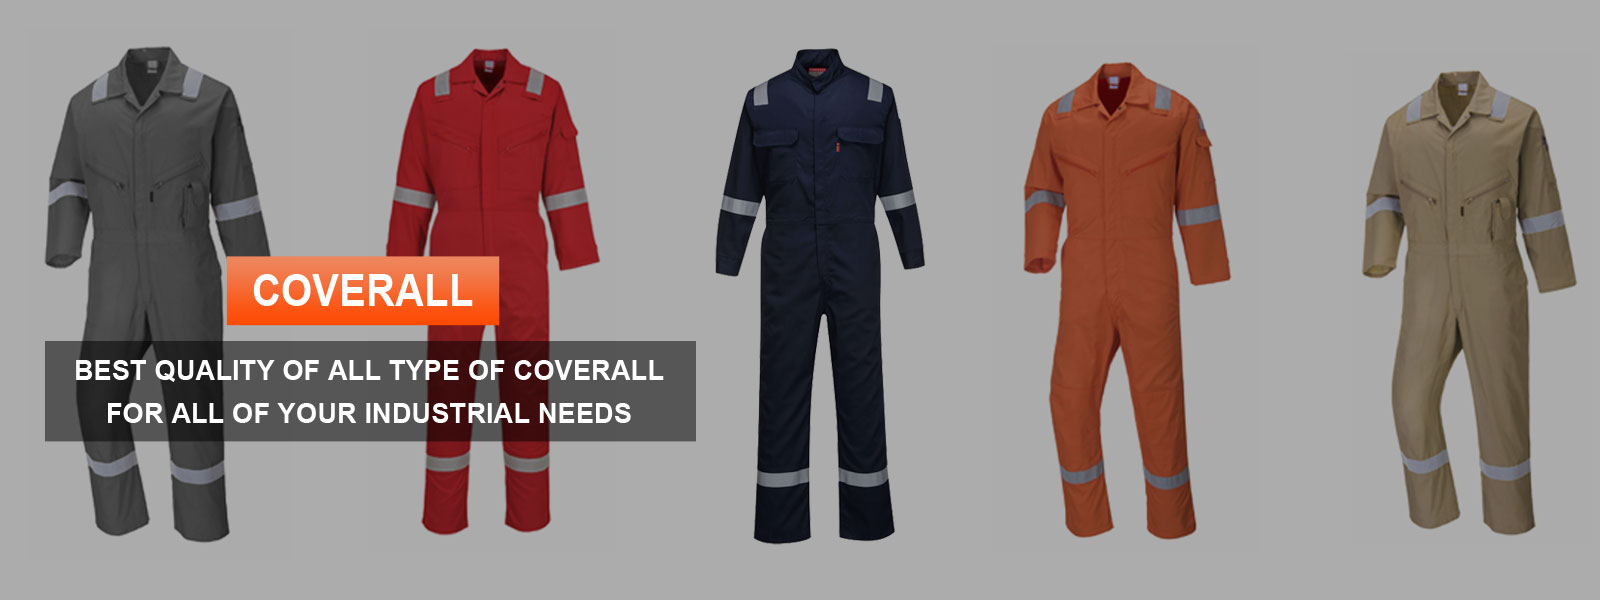 Coverall Manufacturers in Togo